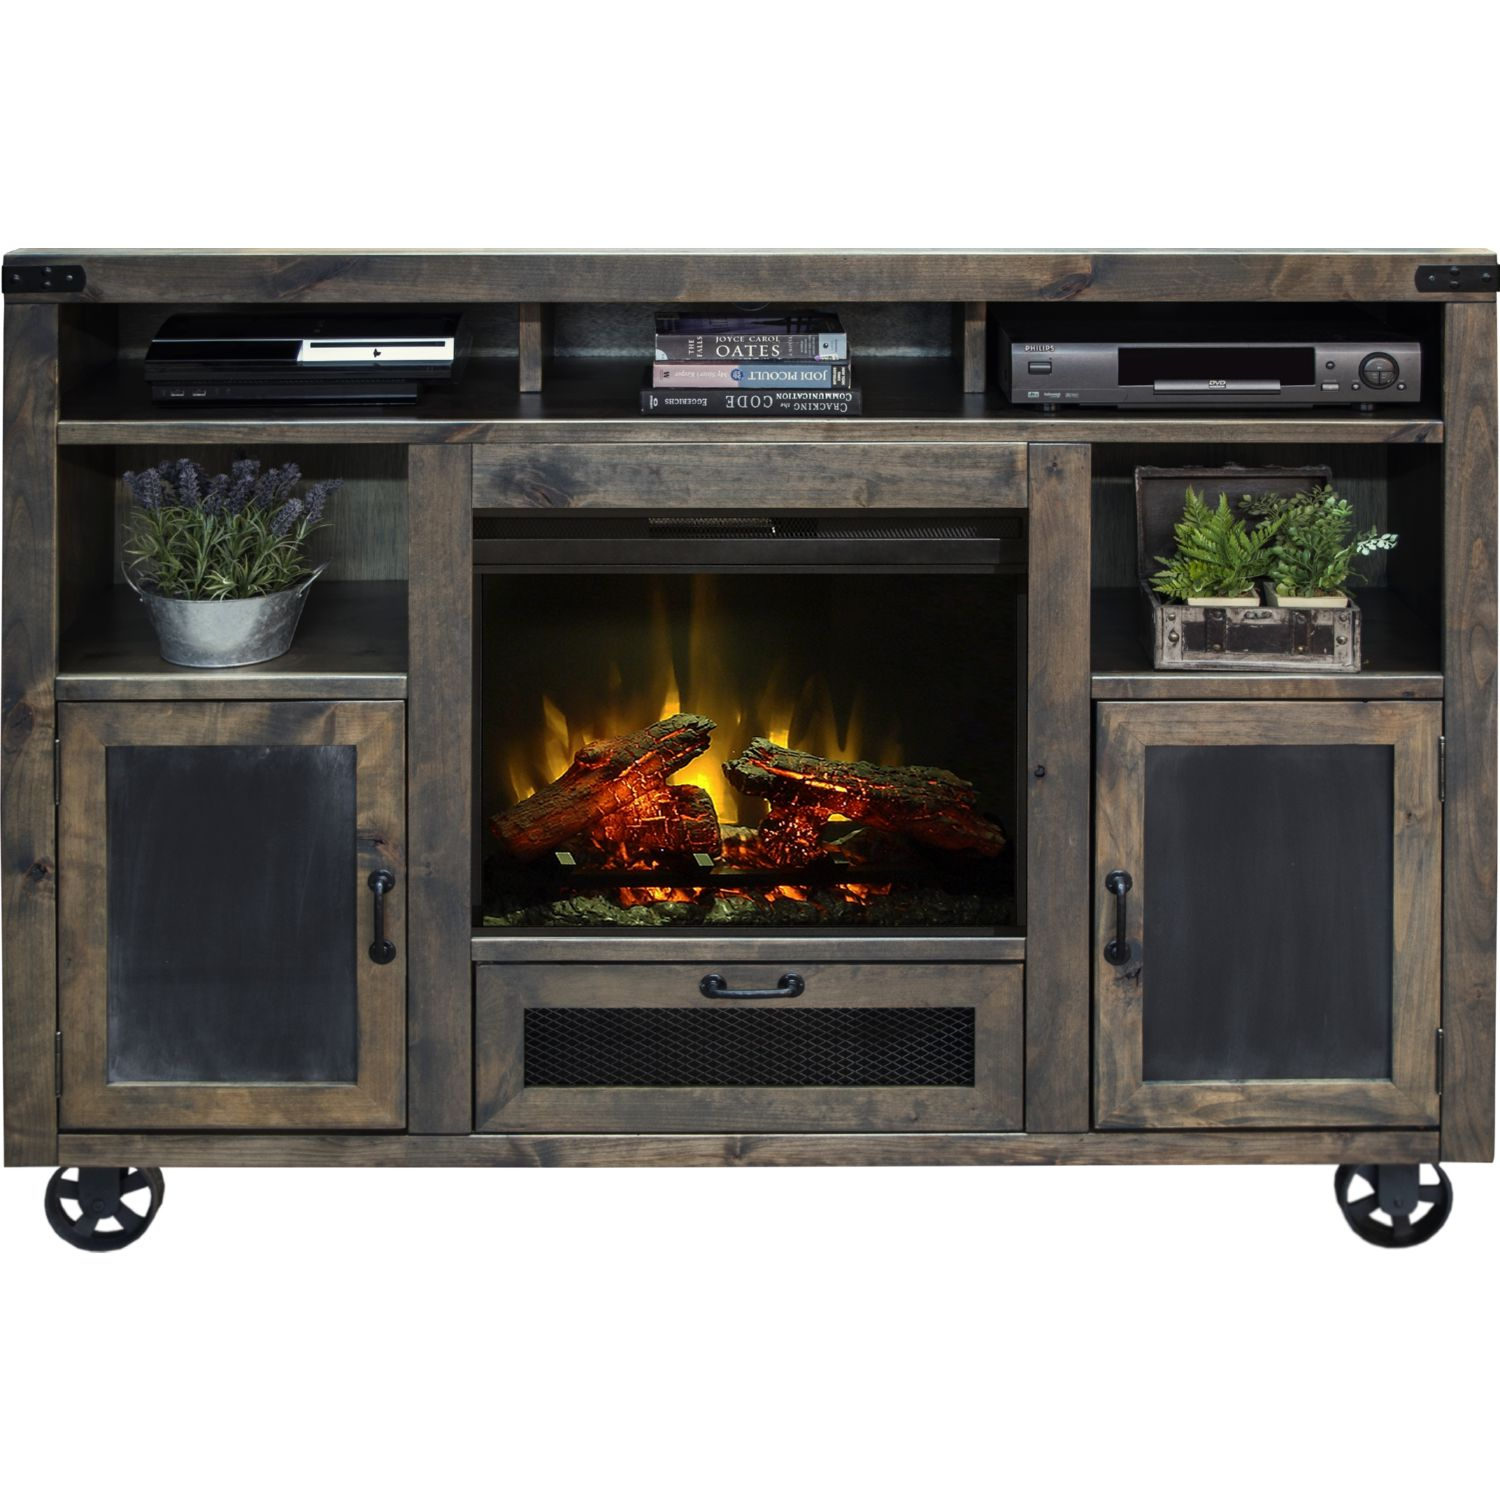 "Legends Furniture CO5351 Cargo 62"" Fireplace TV Stand Console Distressed Barnwood Legends-CO5351"